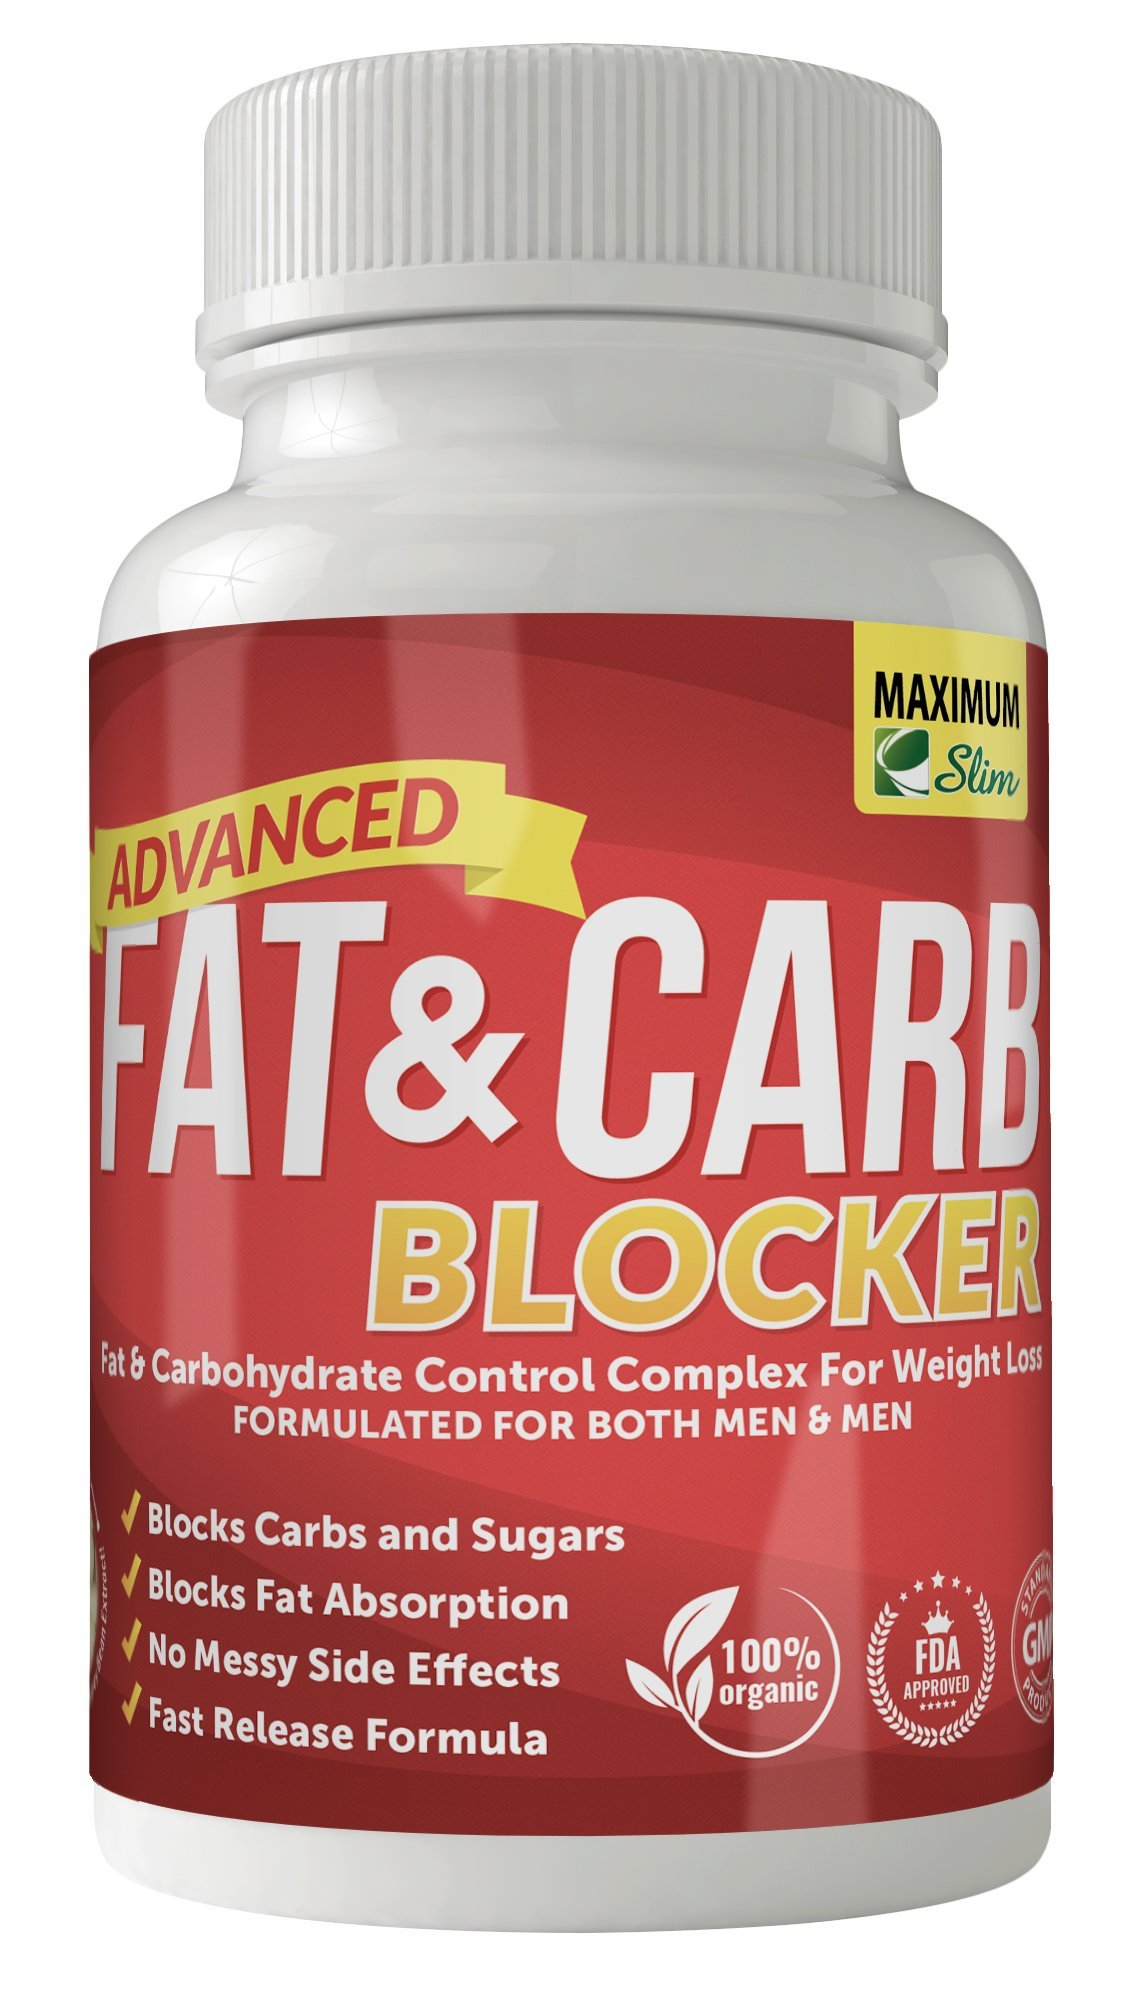 Maximum Slim Fat & Carb Blocker Pure Kidney Bean Extract for Weight Loss and Appetite Suppressant, 1600mg Per Serving. Recently Featured on TV by Maximum Slim